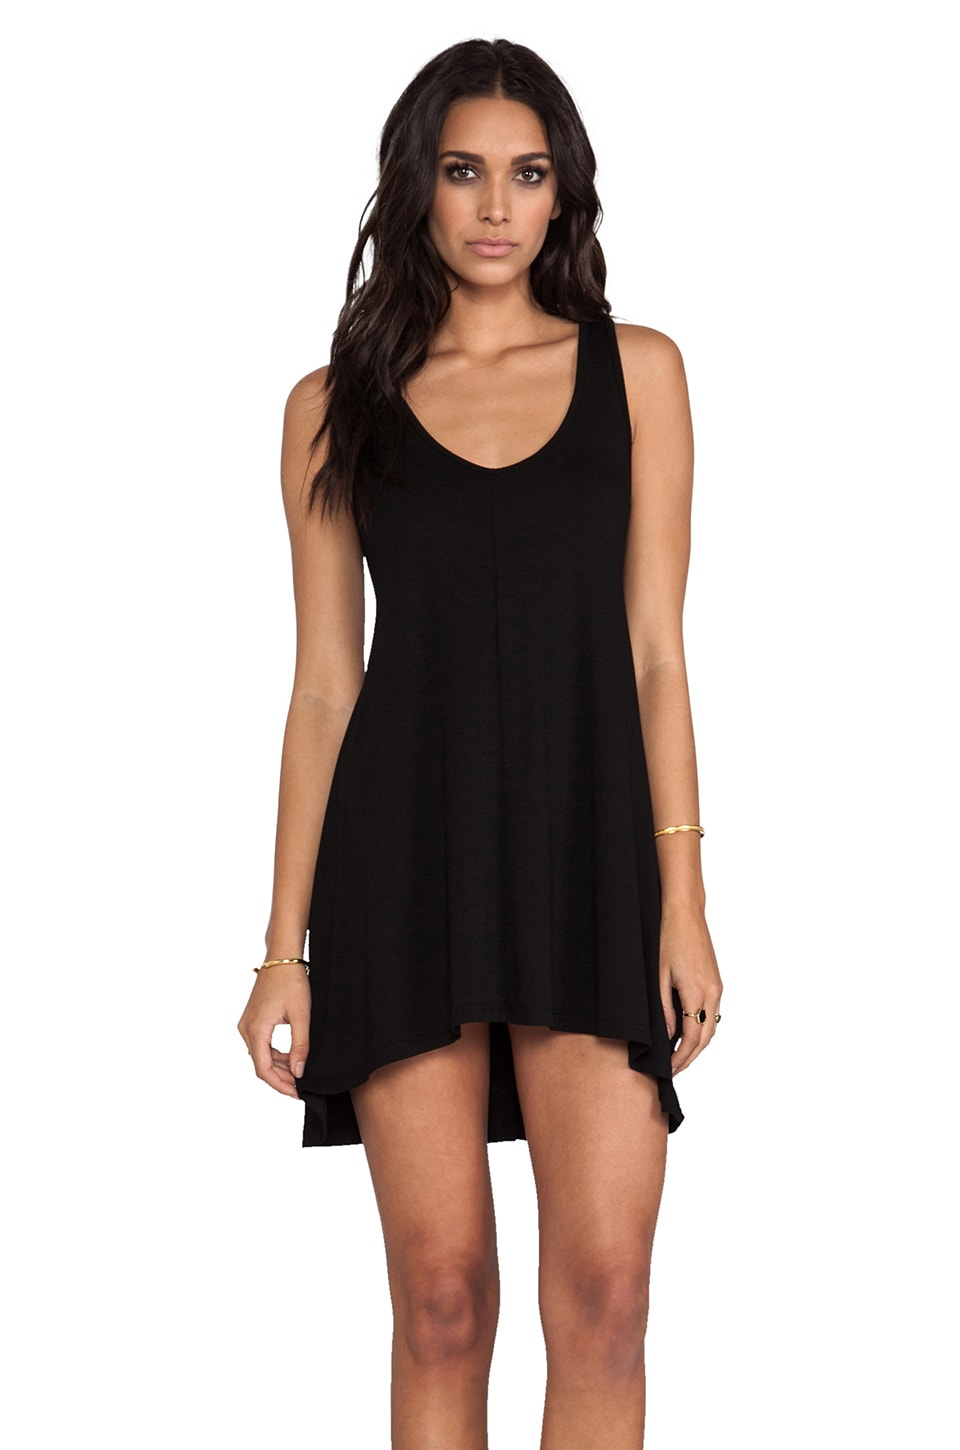 Feel the Piece Short Dress in Black